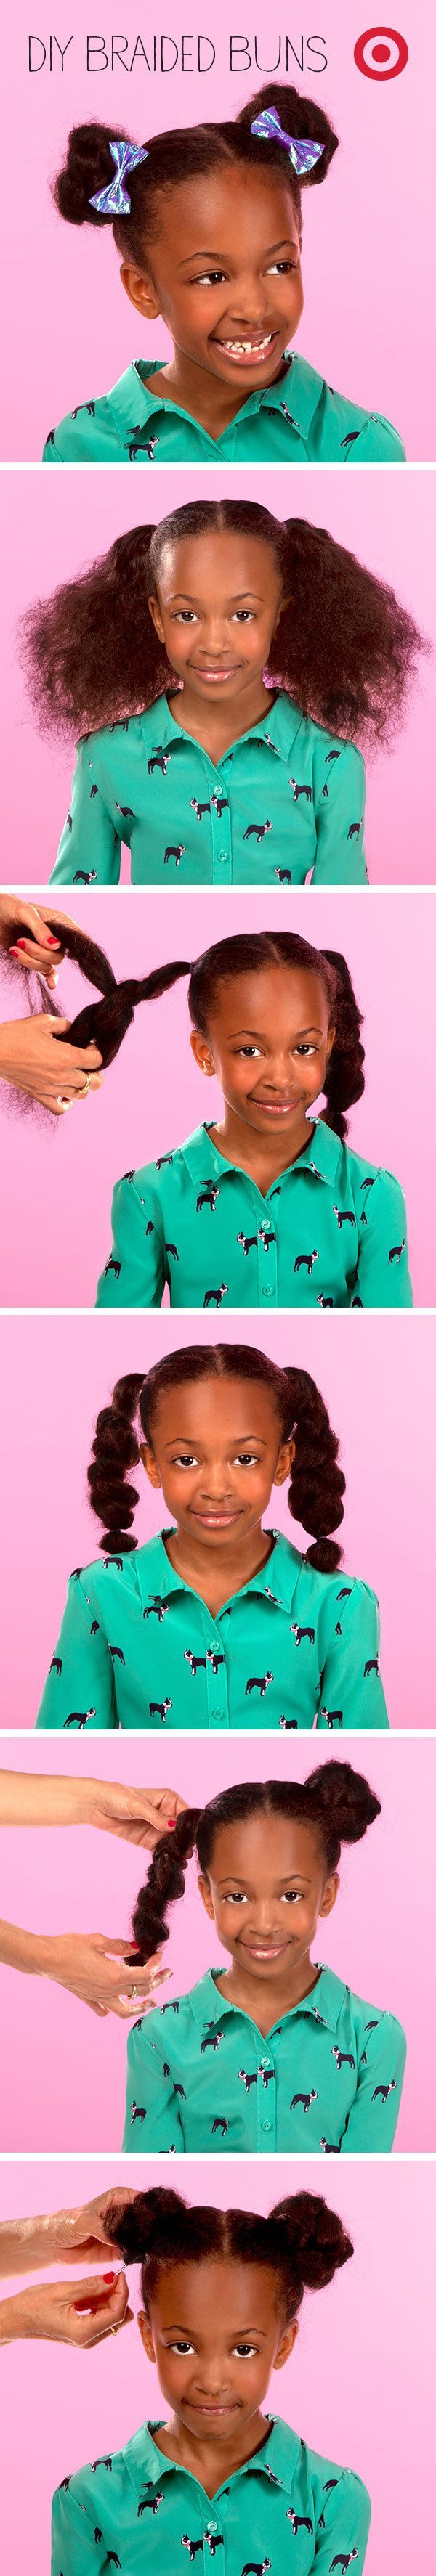 Try braided buns with bows for a girls' picture day hairstyle that's great for back to school.